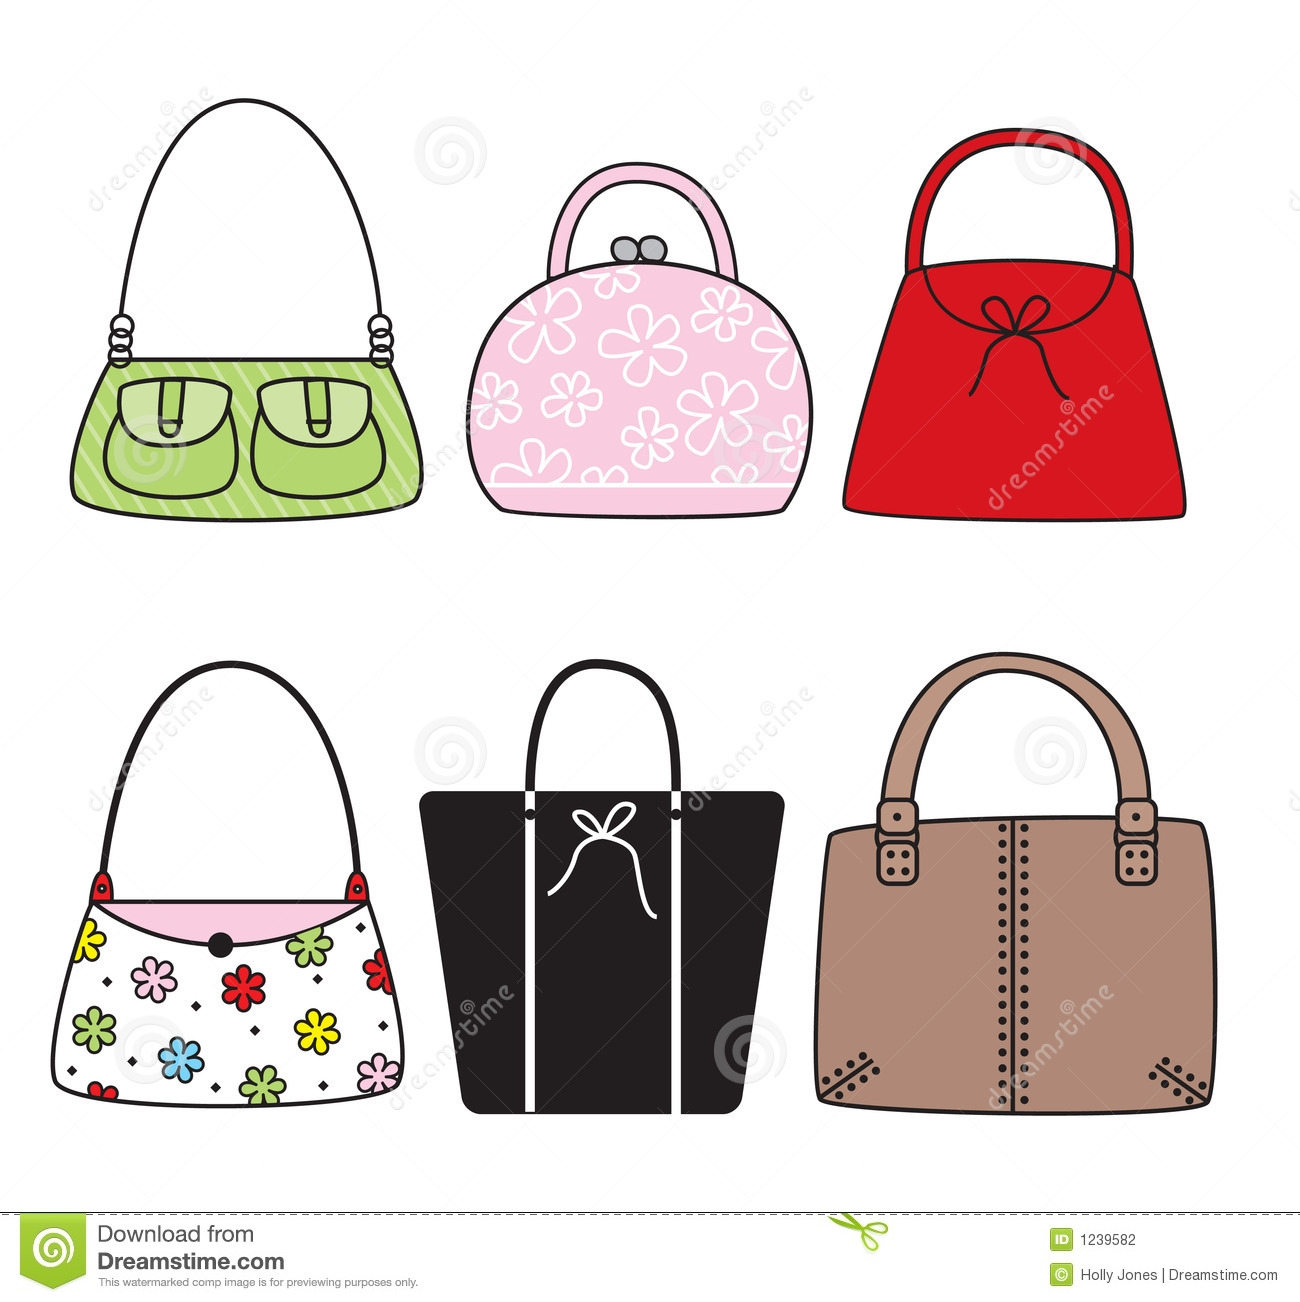 Purse clipart New Free handbag clipart Clipart Collection » Clipart.